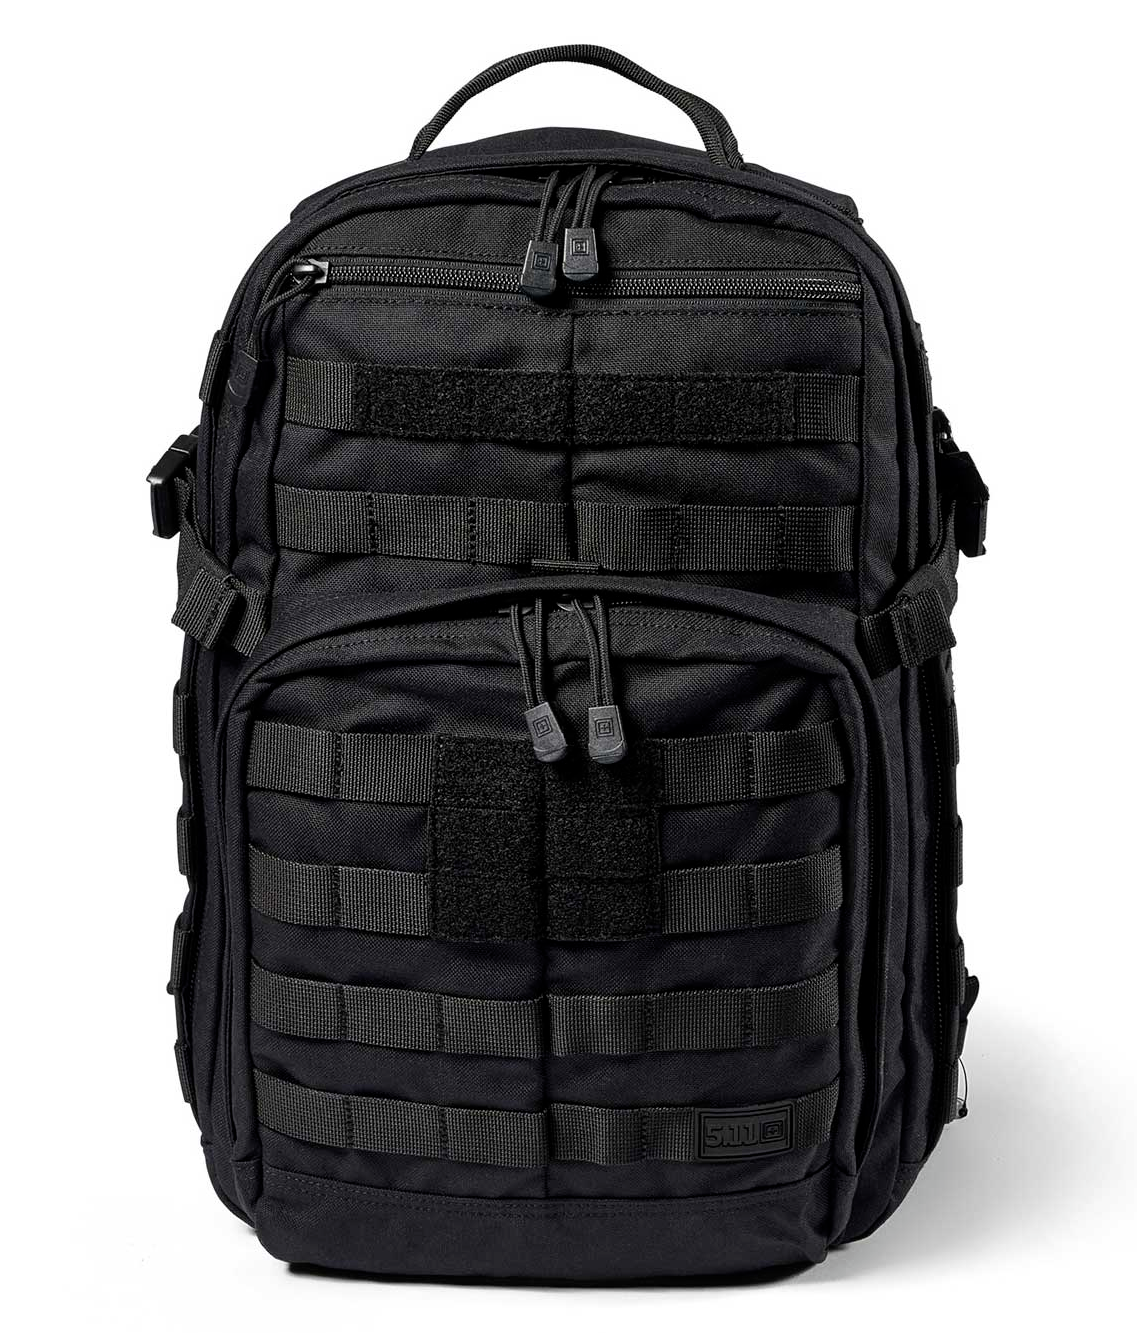 Balo 5.11 Tactical Rush 12 2.0 – Black